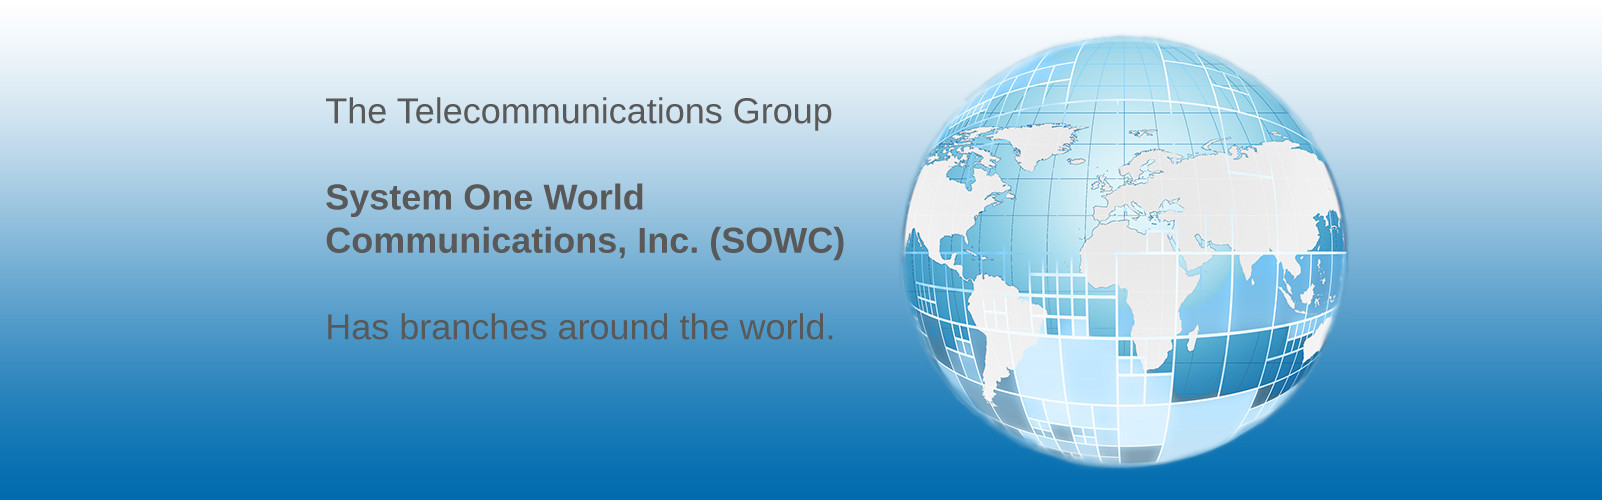 The Telecommunications Group System One World Communications, Inc. (Sowc) Has braches around the world.